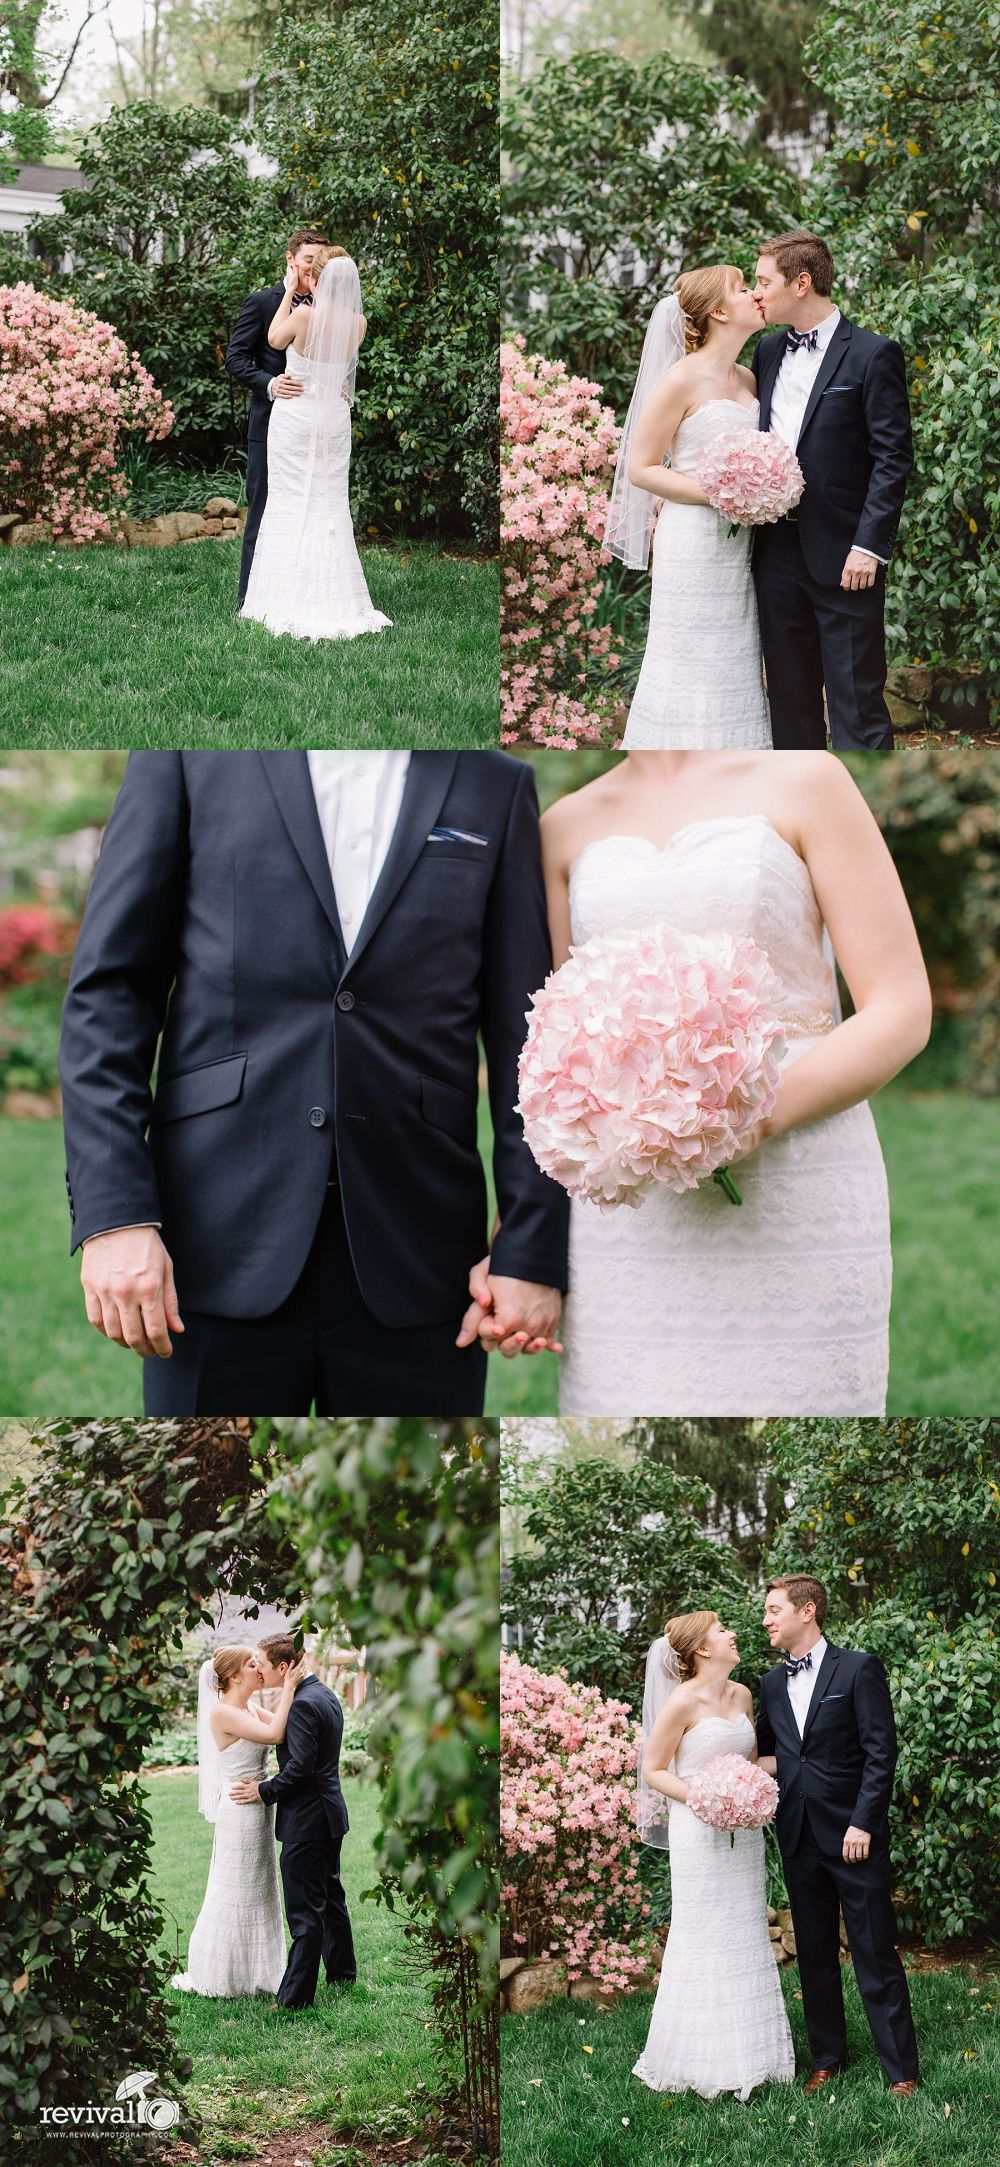 Betsy Mark A Garden Wedding In Hickory Nc By Revival Photography Revival Photography Husband Wife Photographers Based In North Carolina Specializing I Spring Garden Wedding Wedding Wedding Inspiration